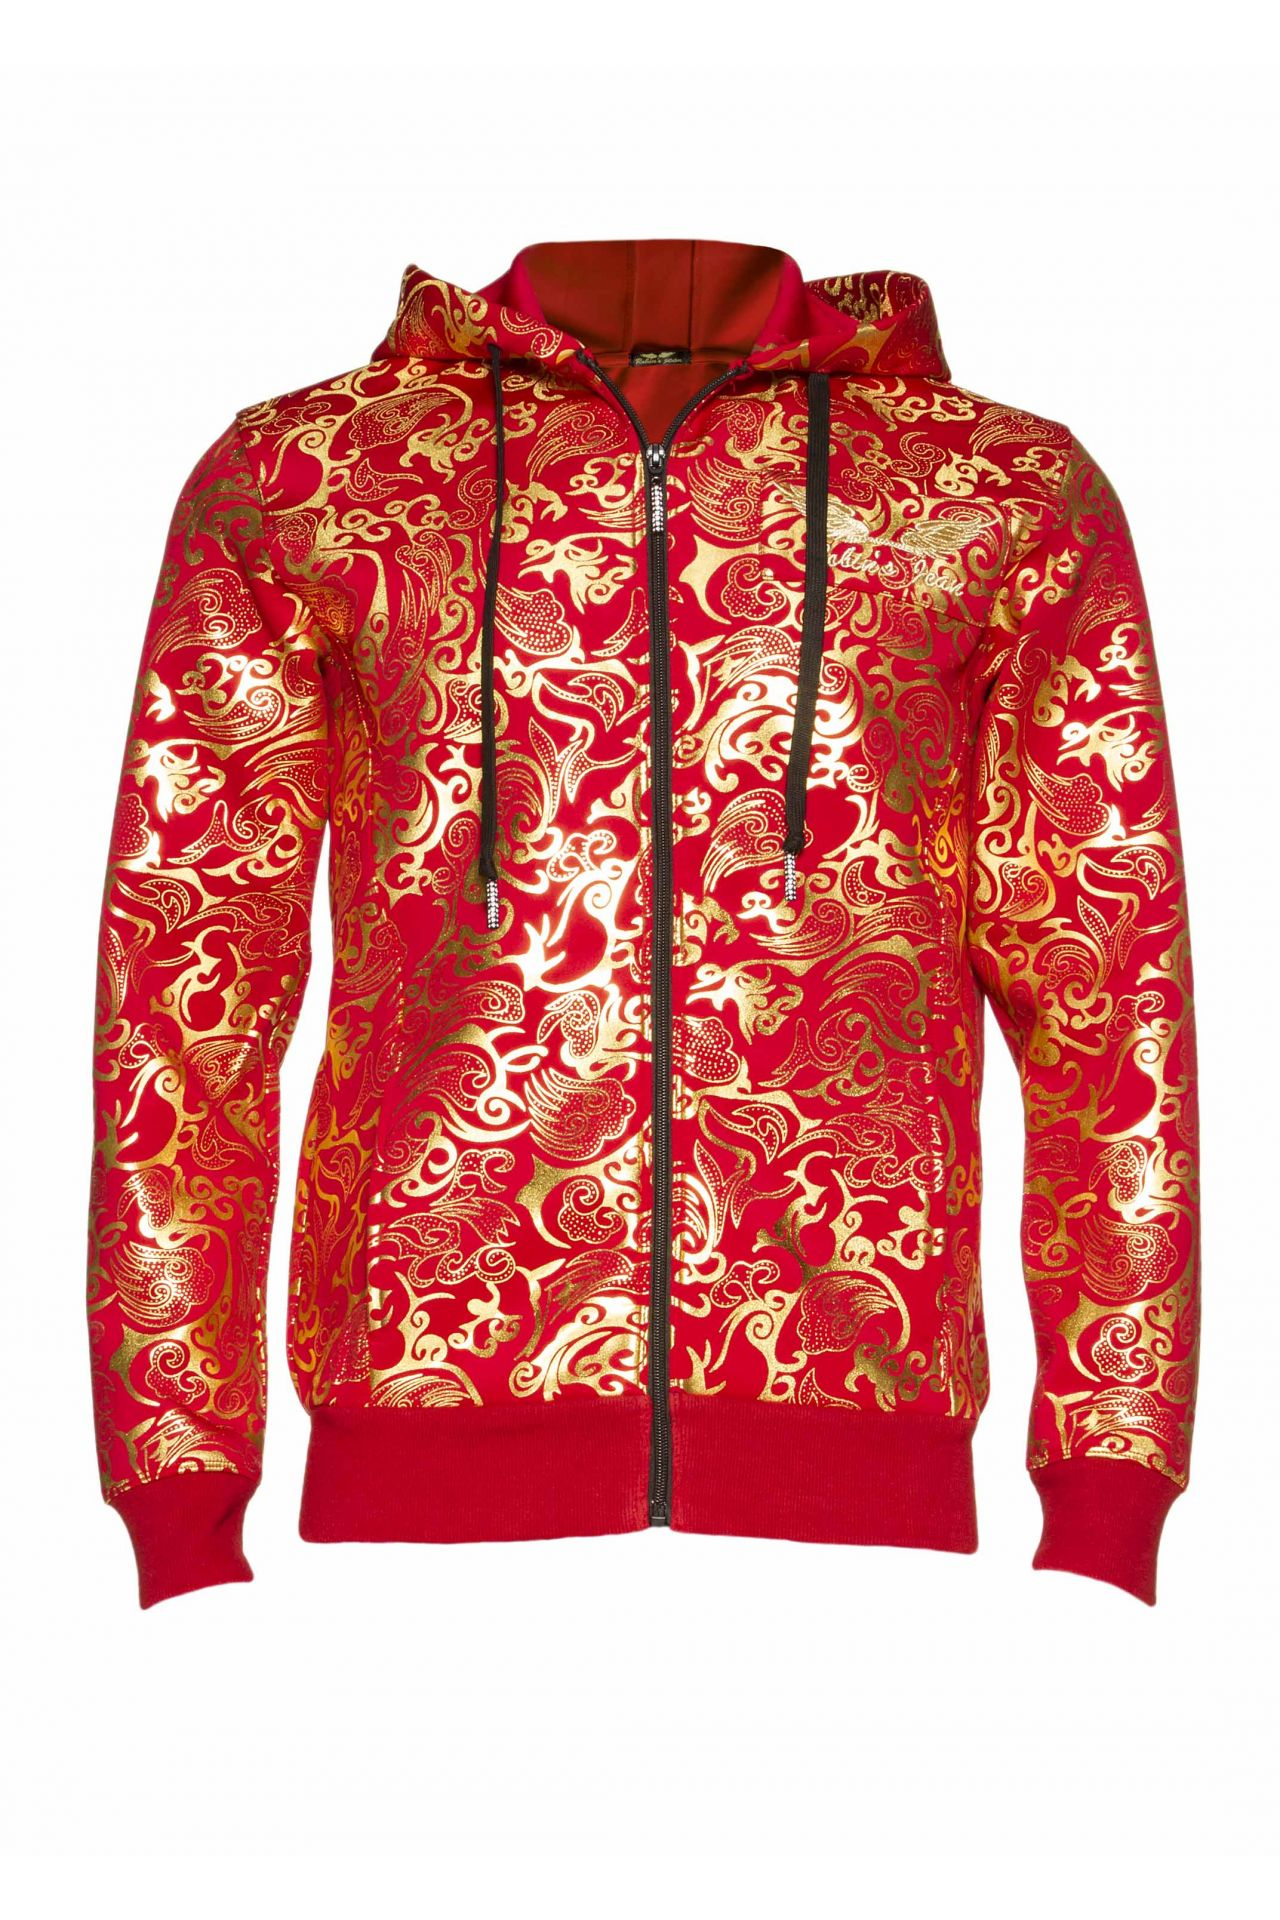 CLOUDS TRACK JACKET HOODIE IN RED AND GOLD